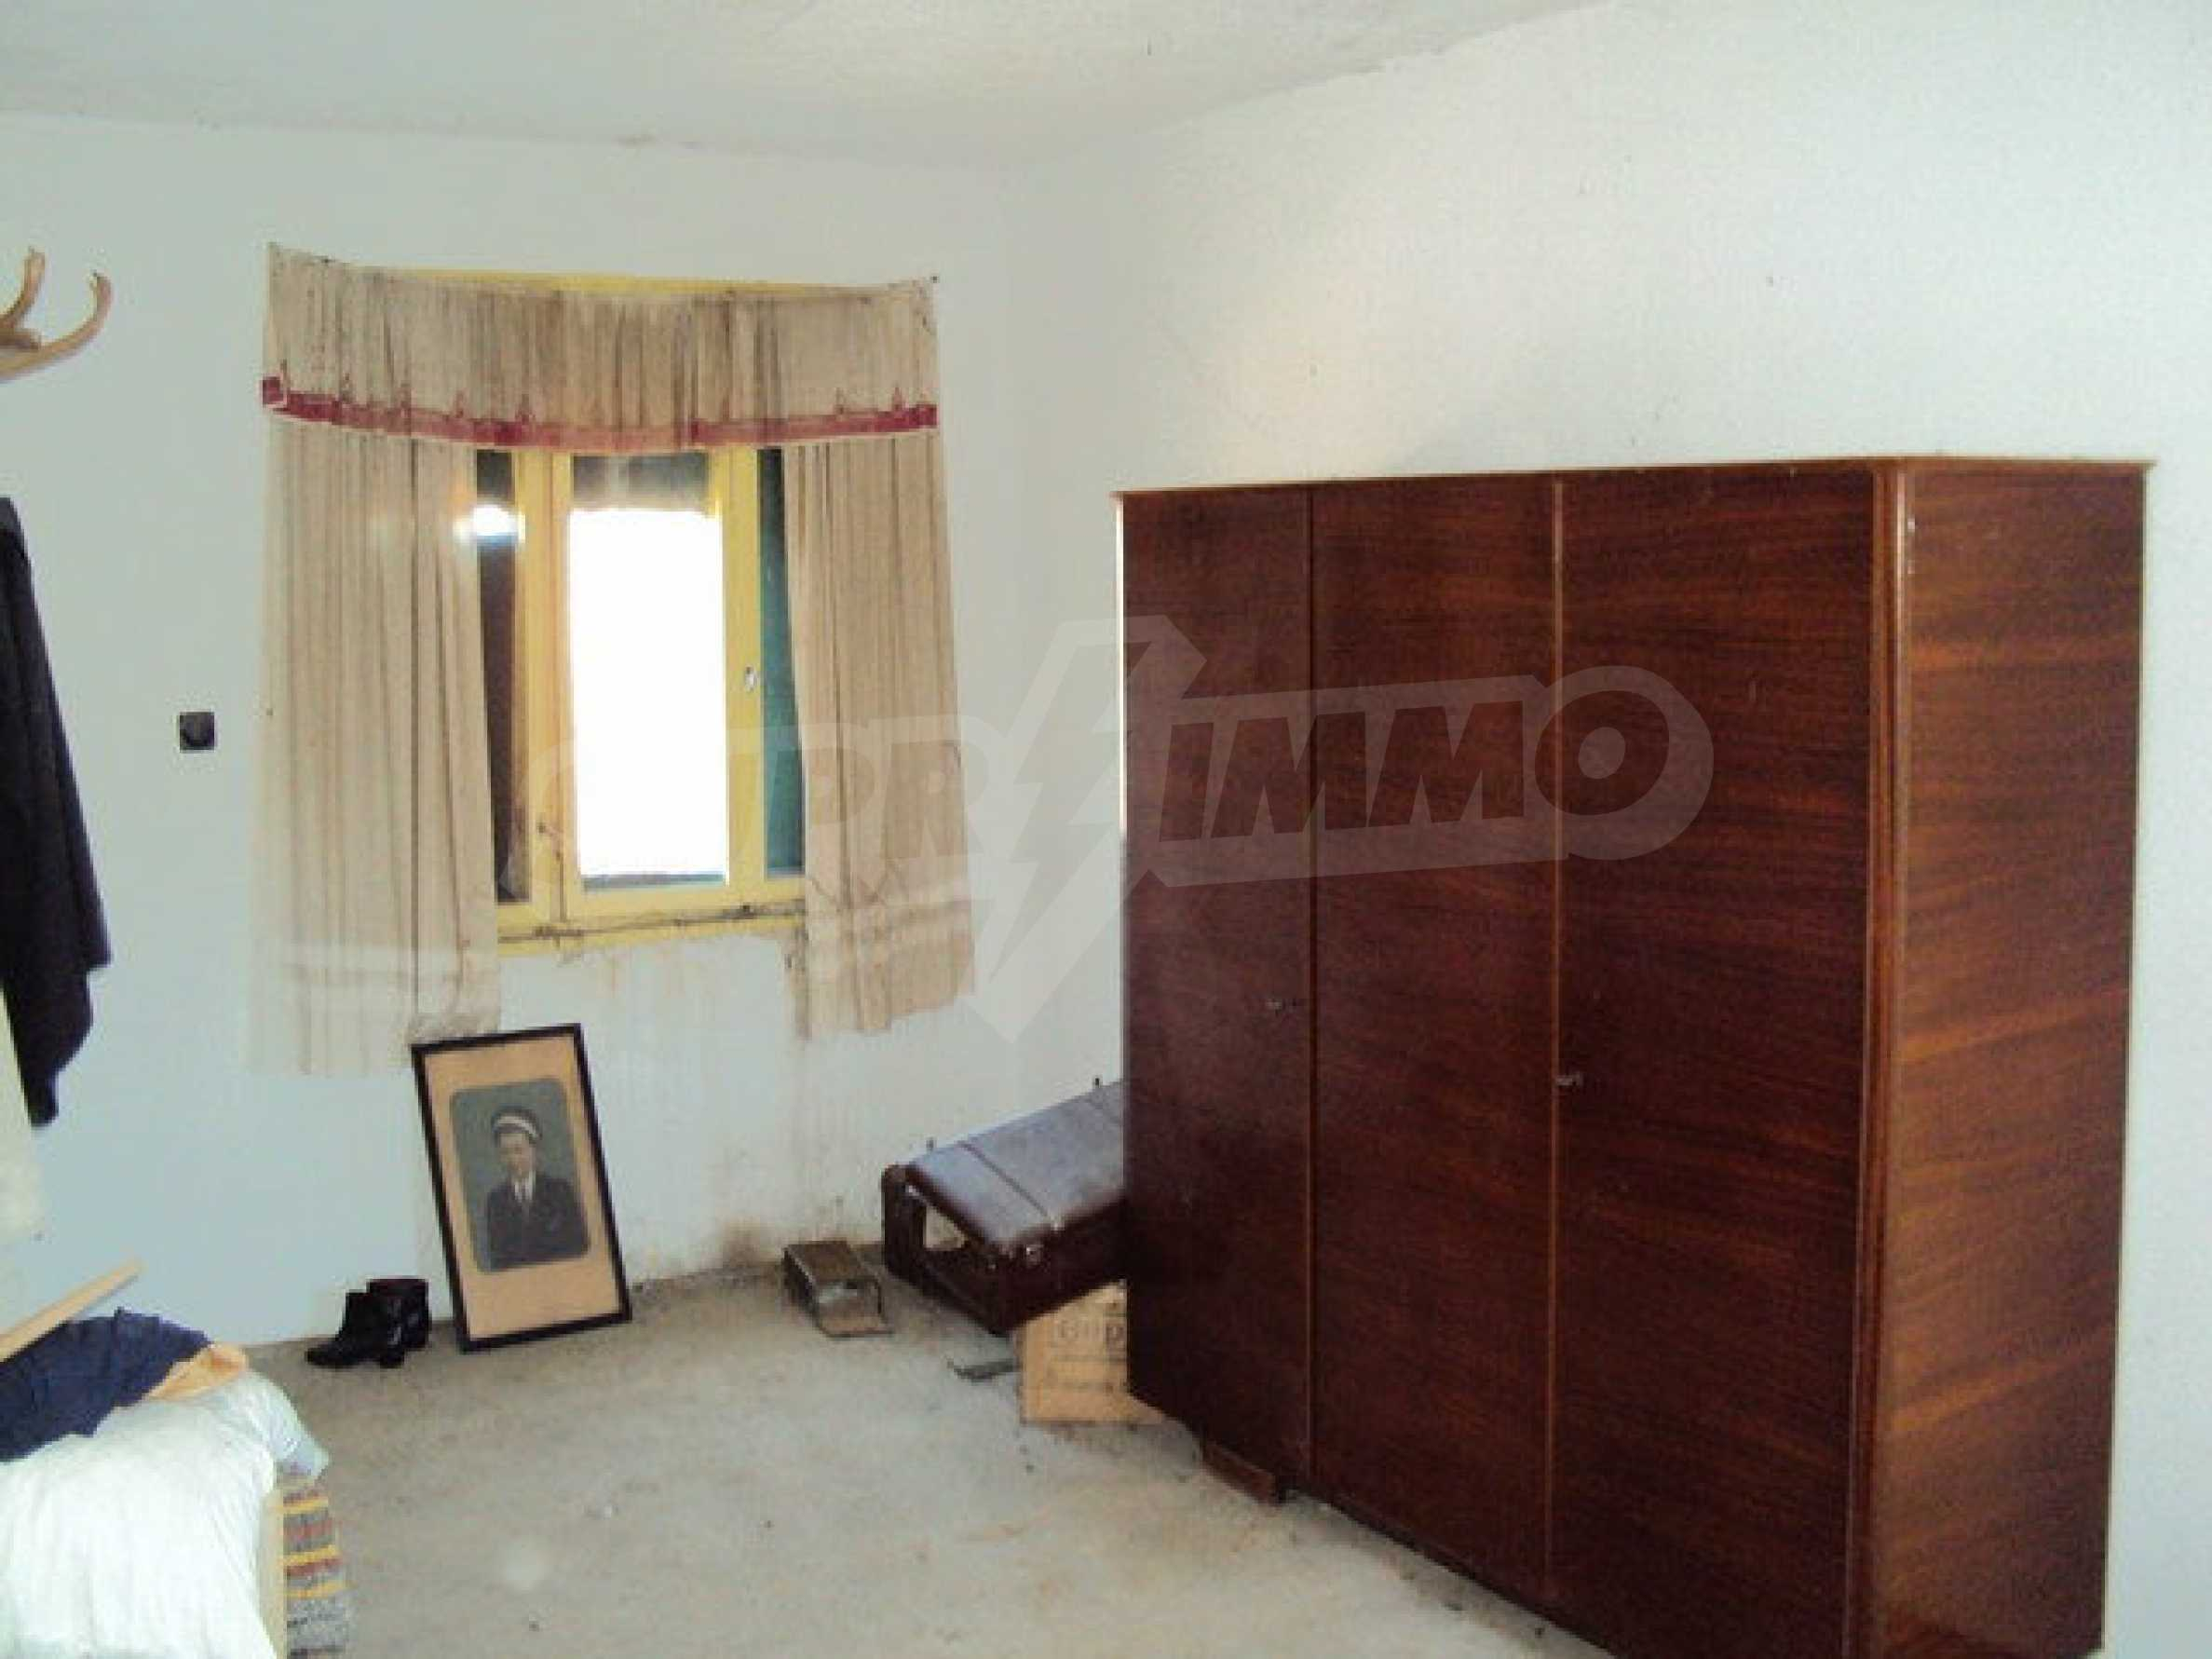 Spacious house in excellent condition in a village 25 km. the old capital of Veliko Tarnovo 36